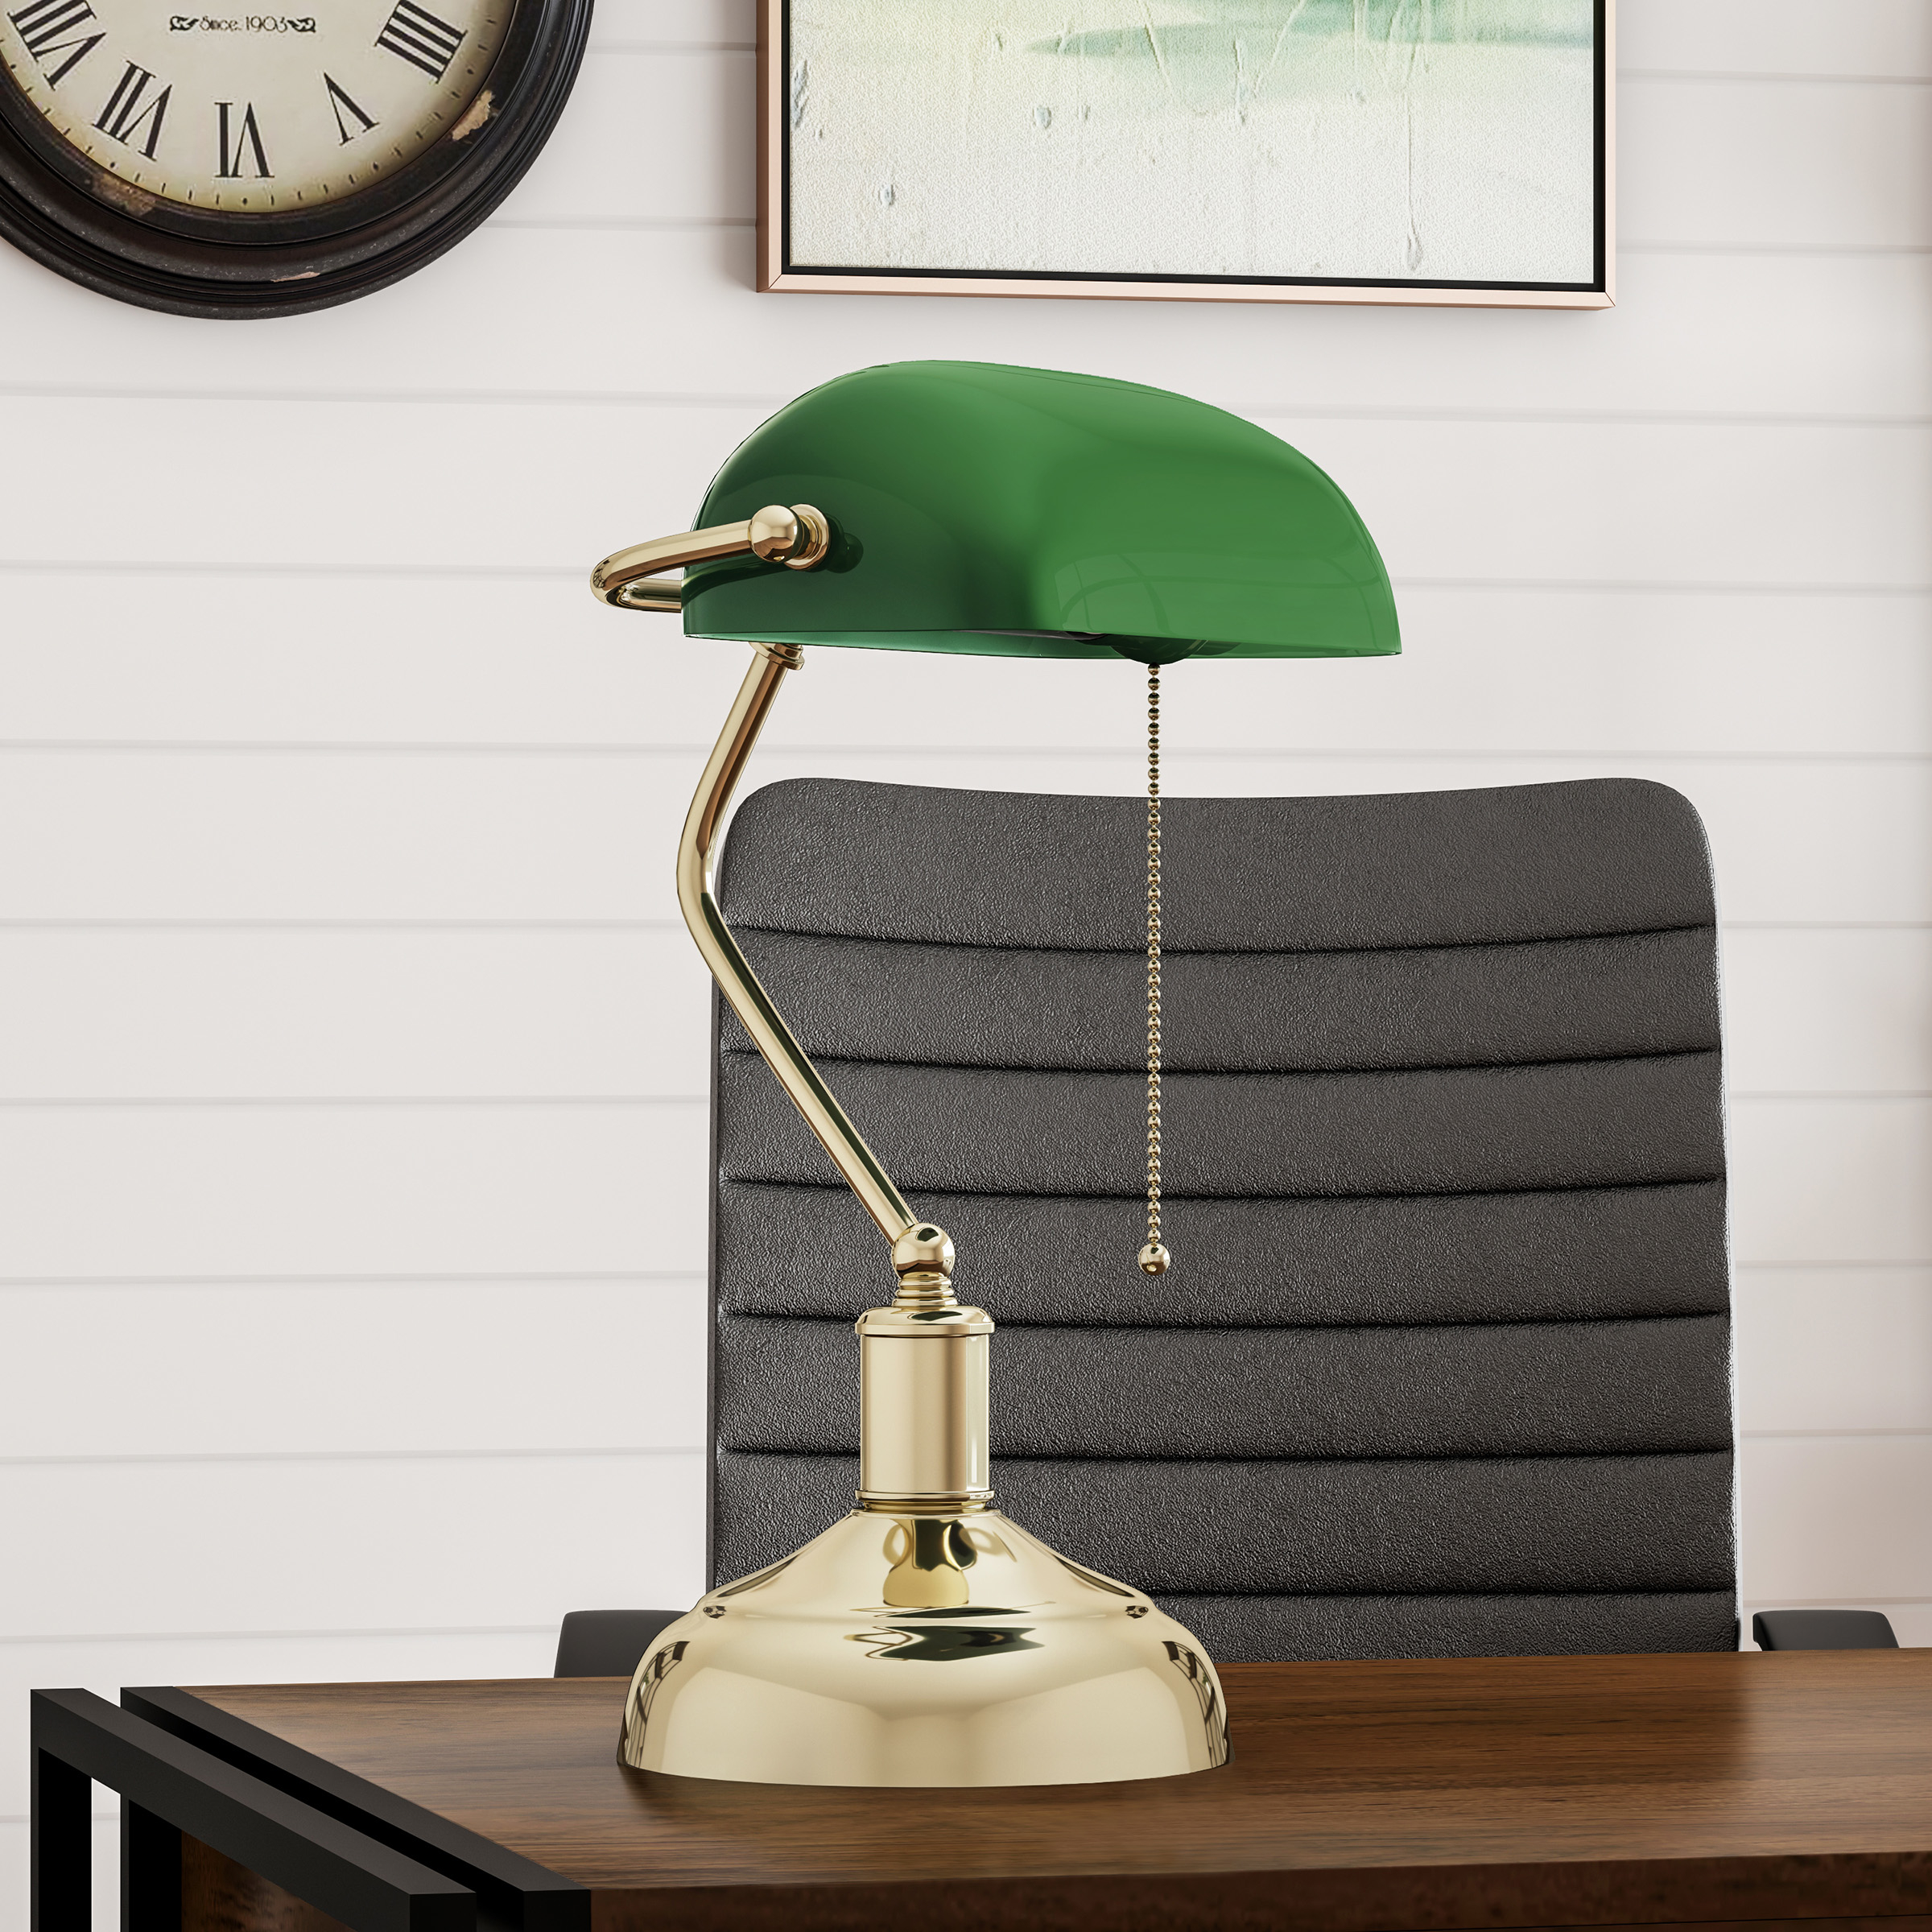 Bankers Lamp Green Glass Shade Antique Vintage Style Retro Desk or Table Lamp with Pull Cord